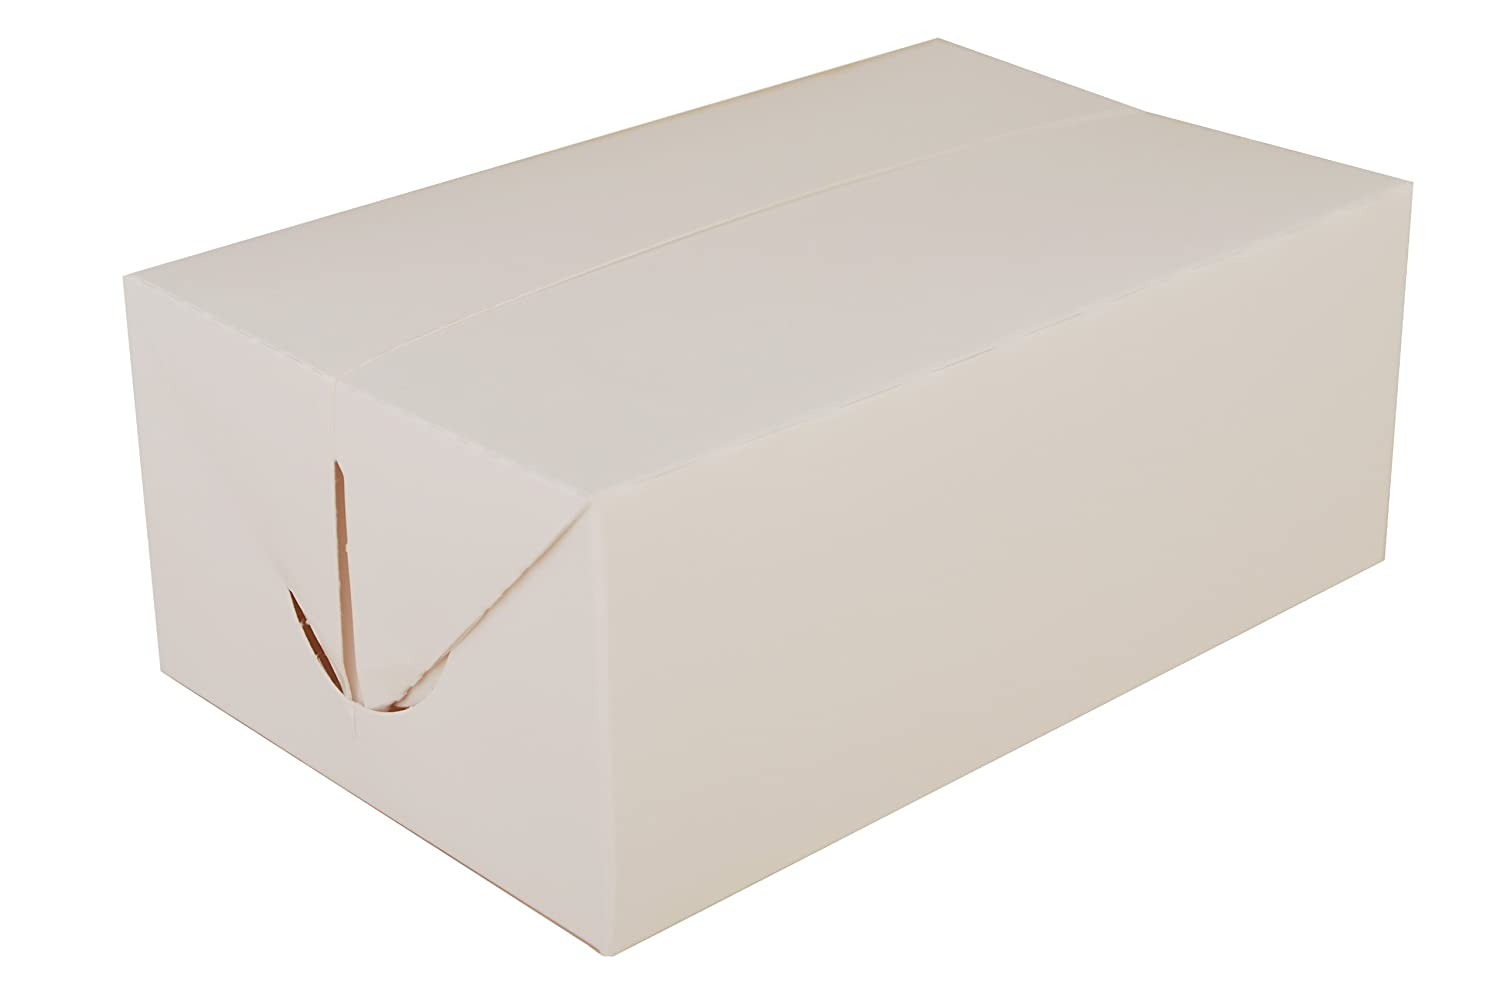 Southern Champion Tray 2718 Paperboard White Snack Carry-Out Box, Fast Top, 7